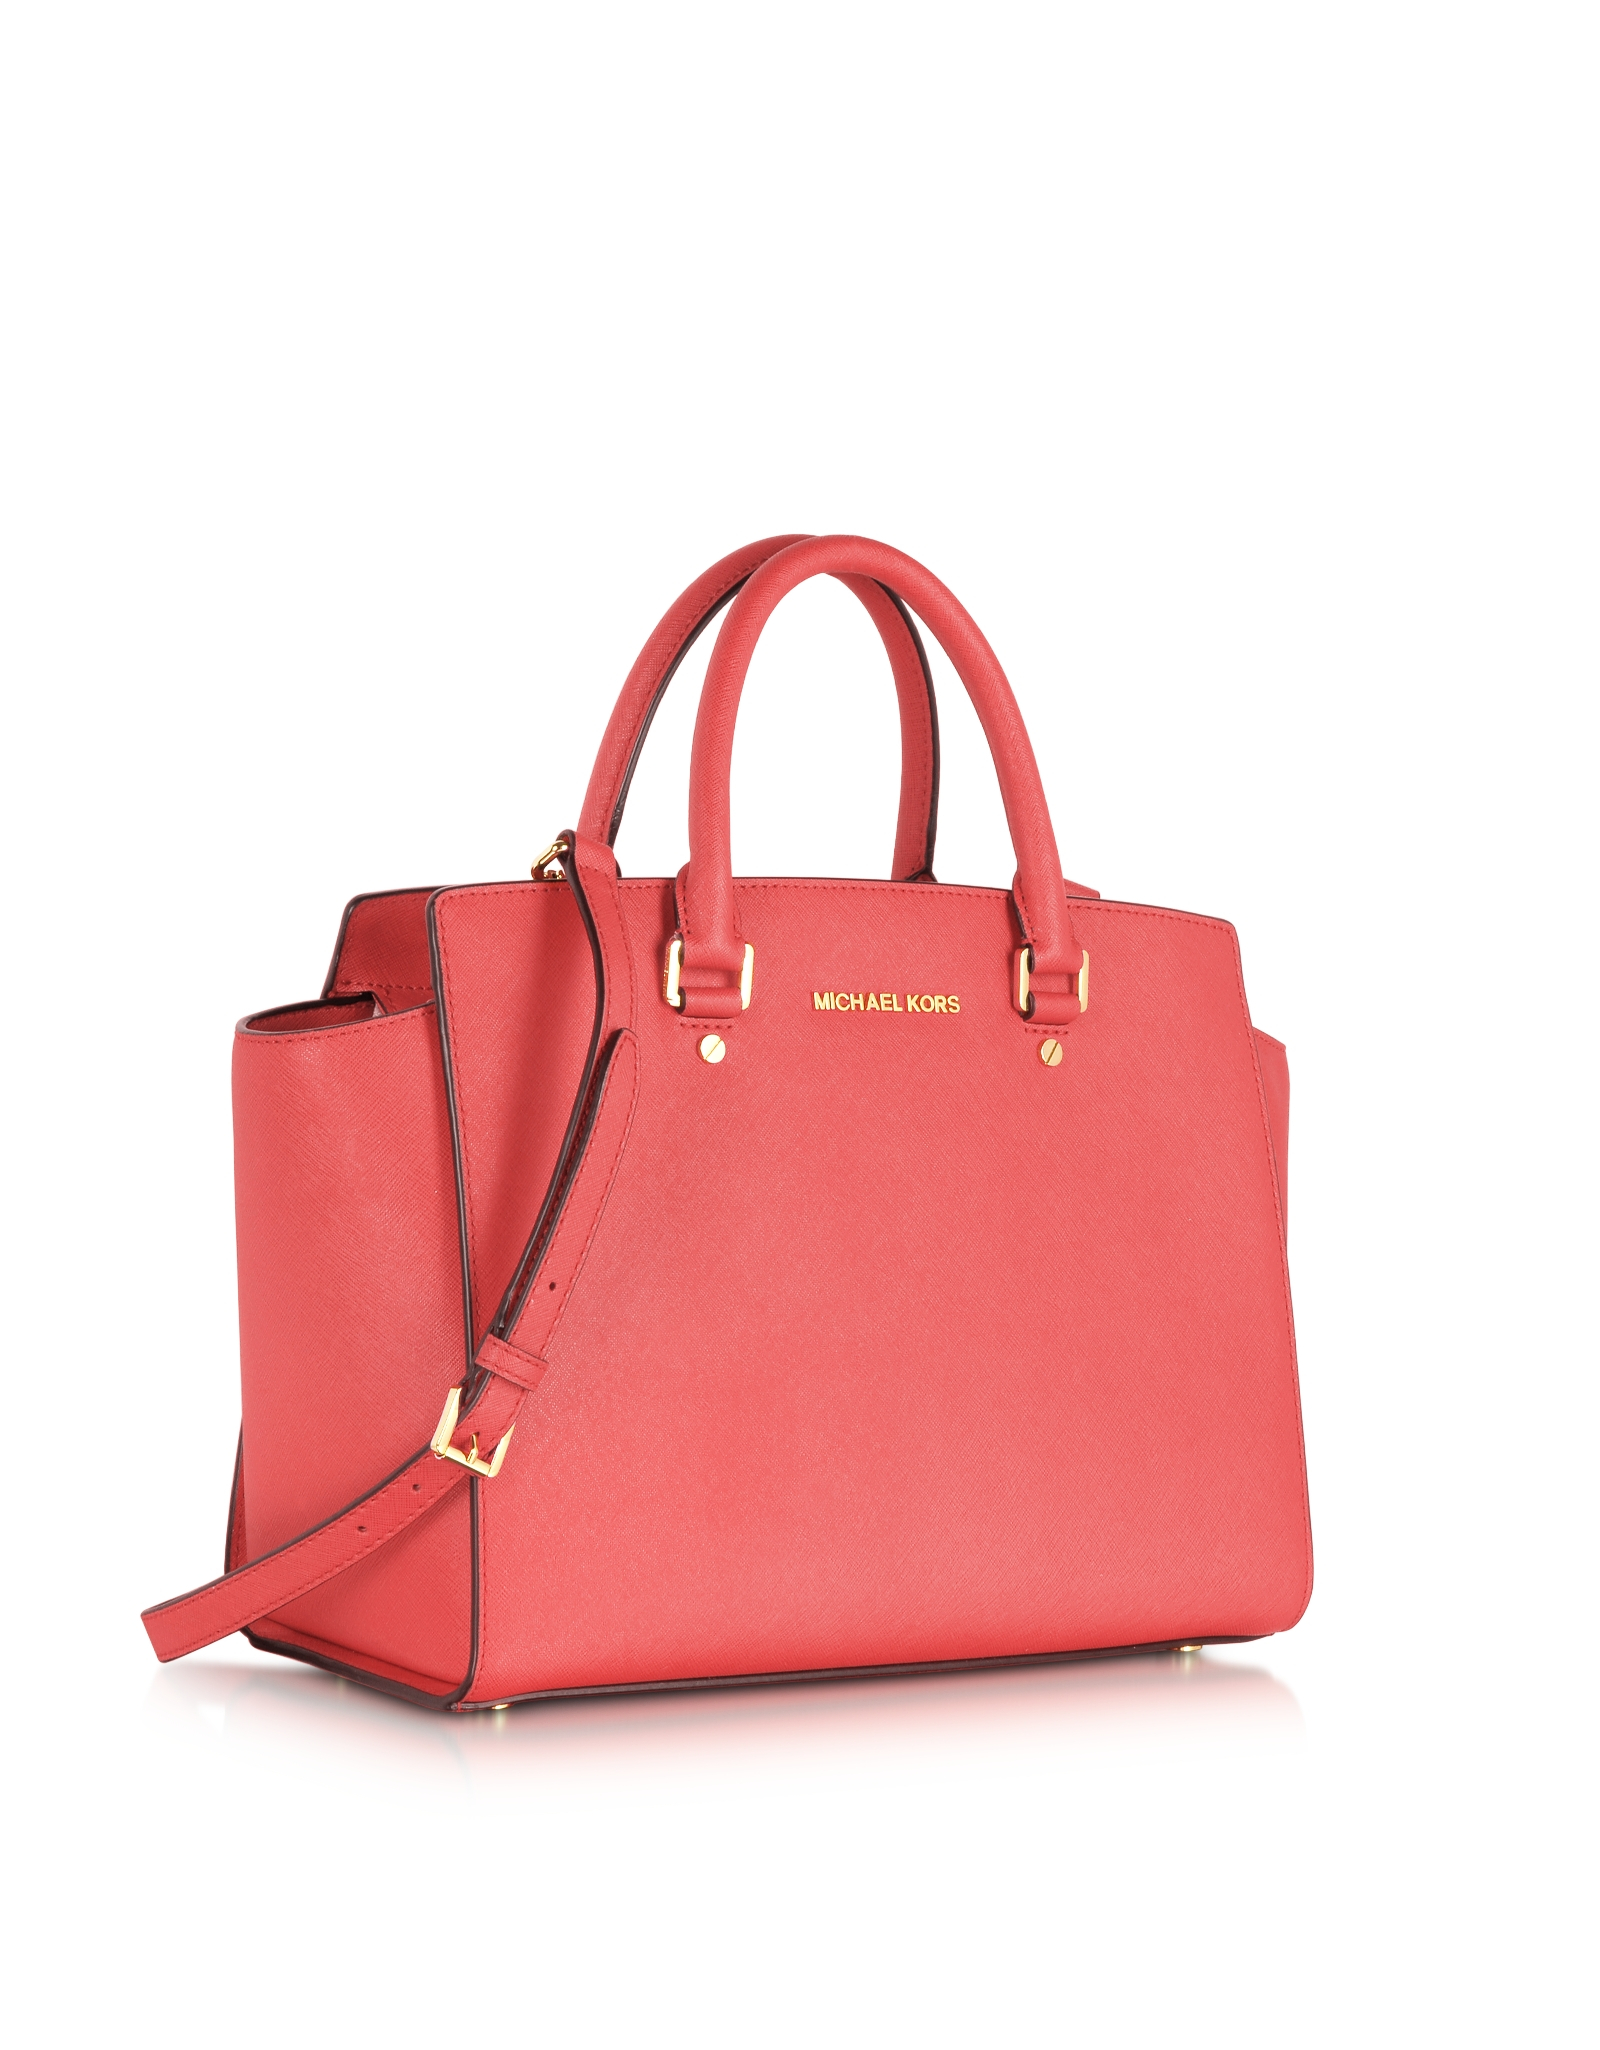 6f229e8a39493 Lyst - Michael Kors Large Selma Top-zip Saffiano Leather Satchel in Red